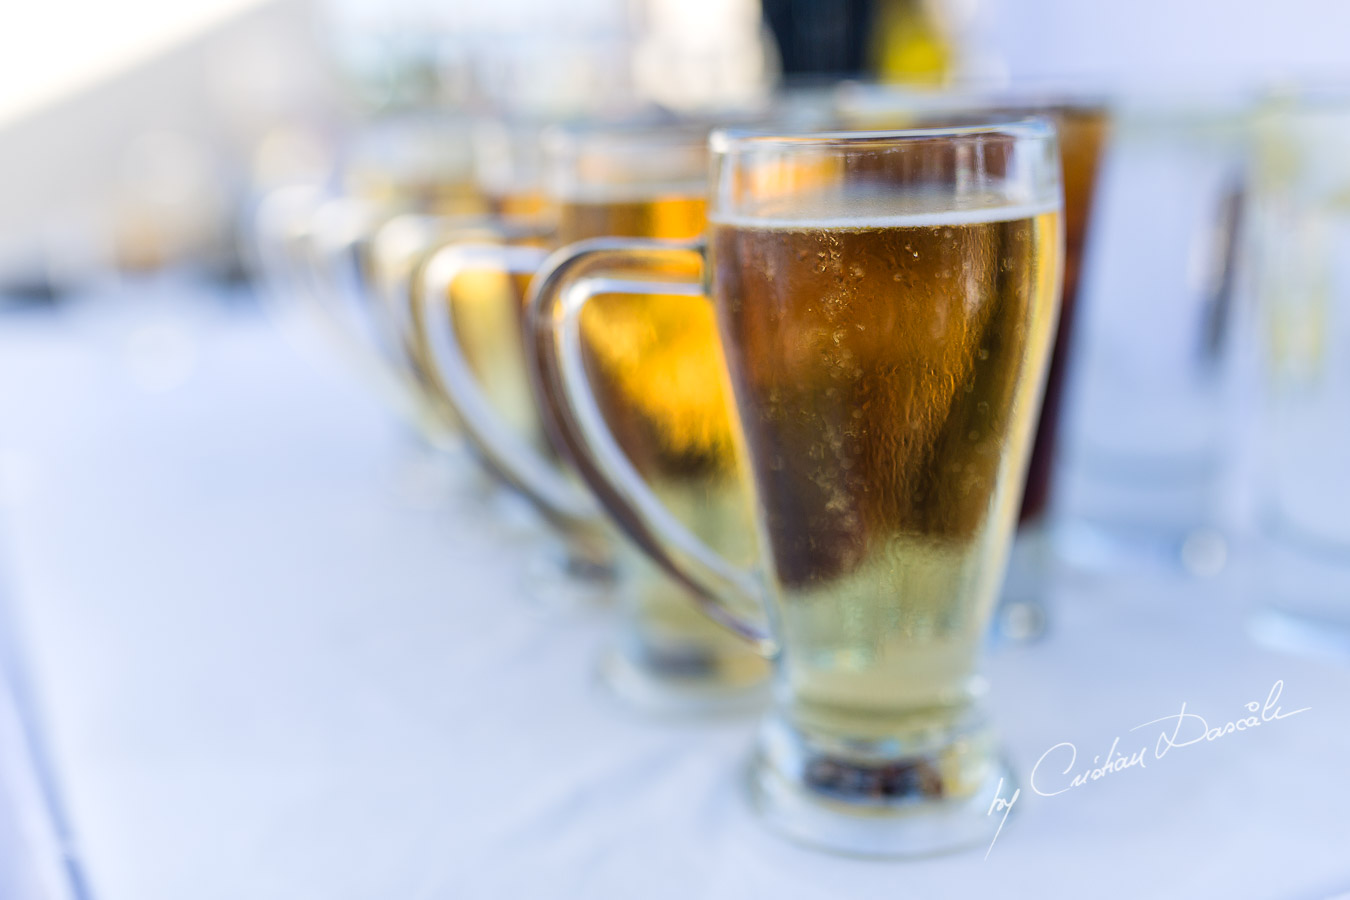 Cold beer on a hot day, captured by Cristian Dascalu at a wedding at The Aphrodite Hills Resort in Paphos, Cyprus.